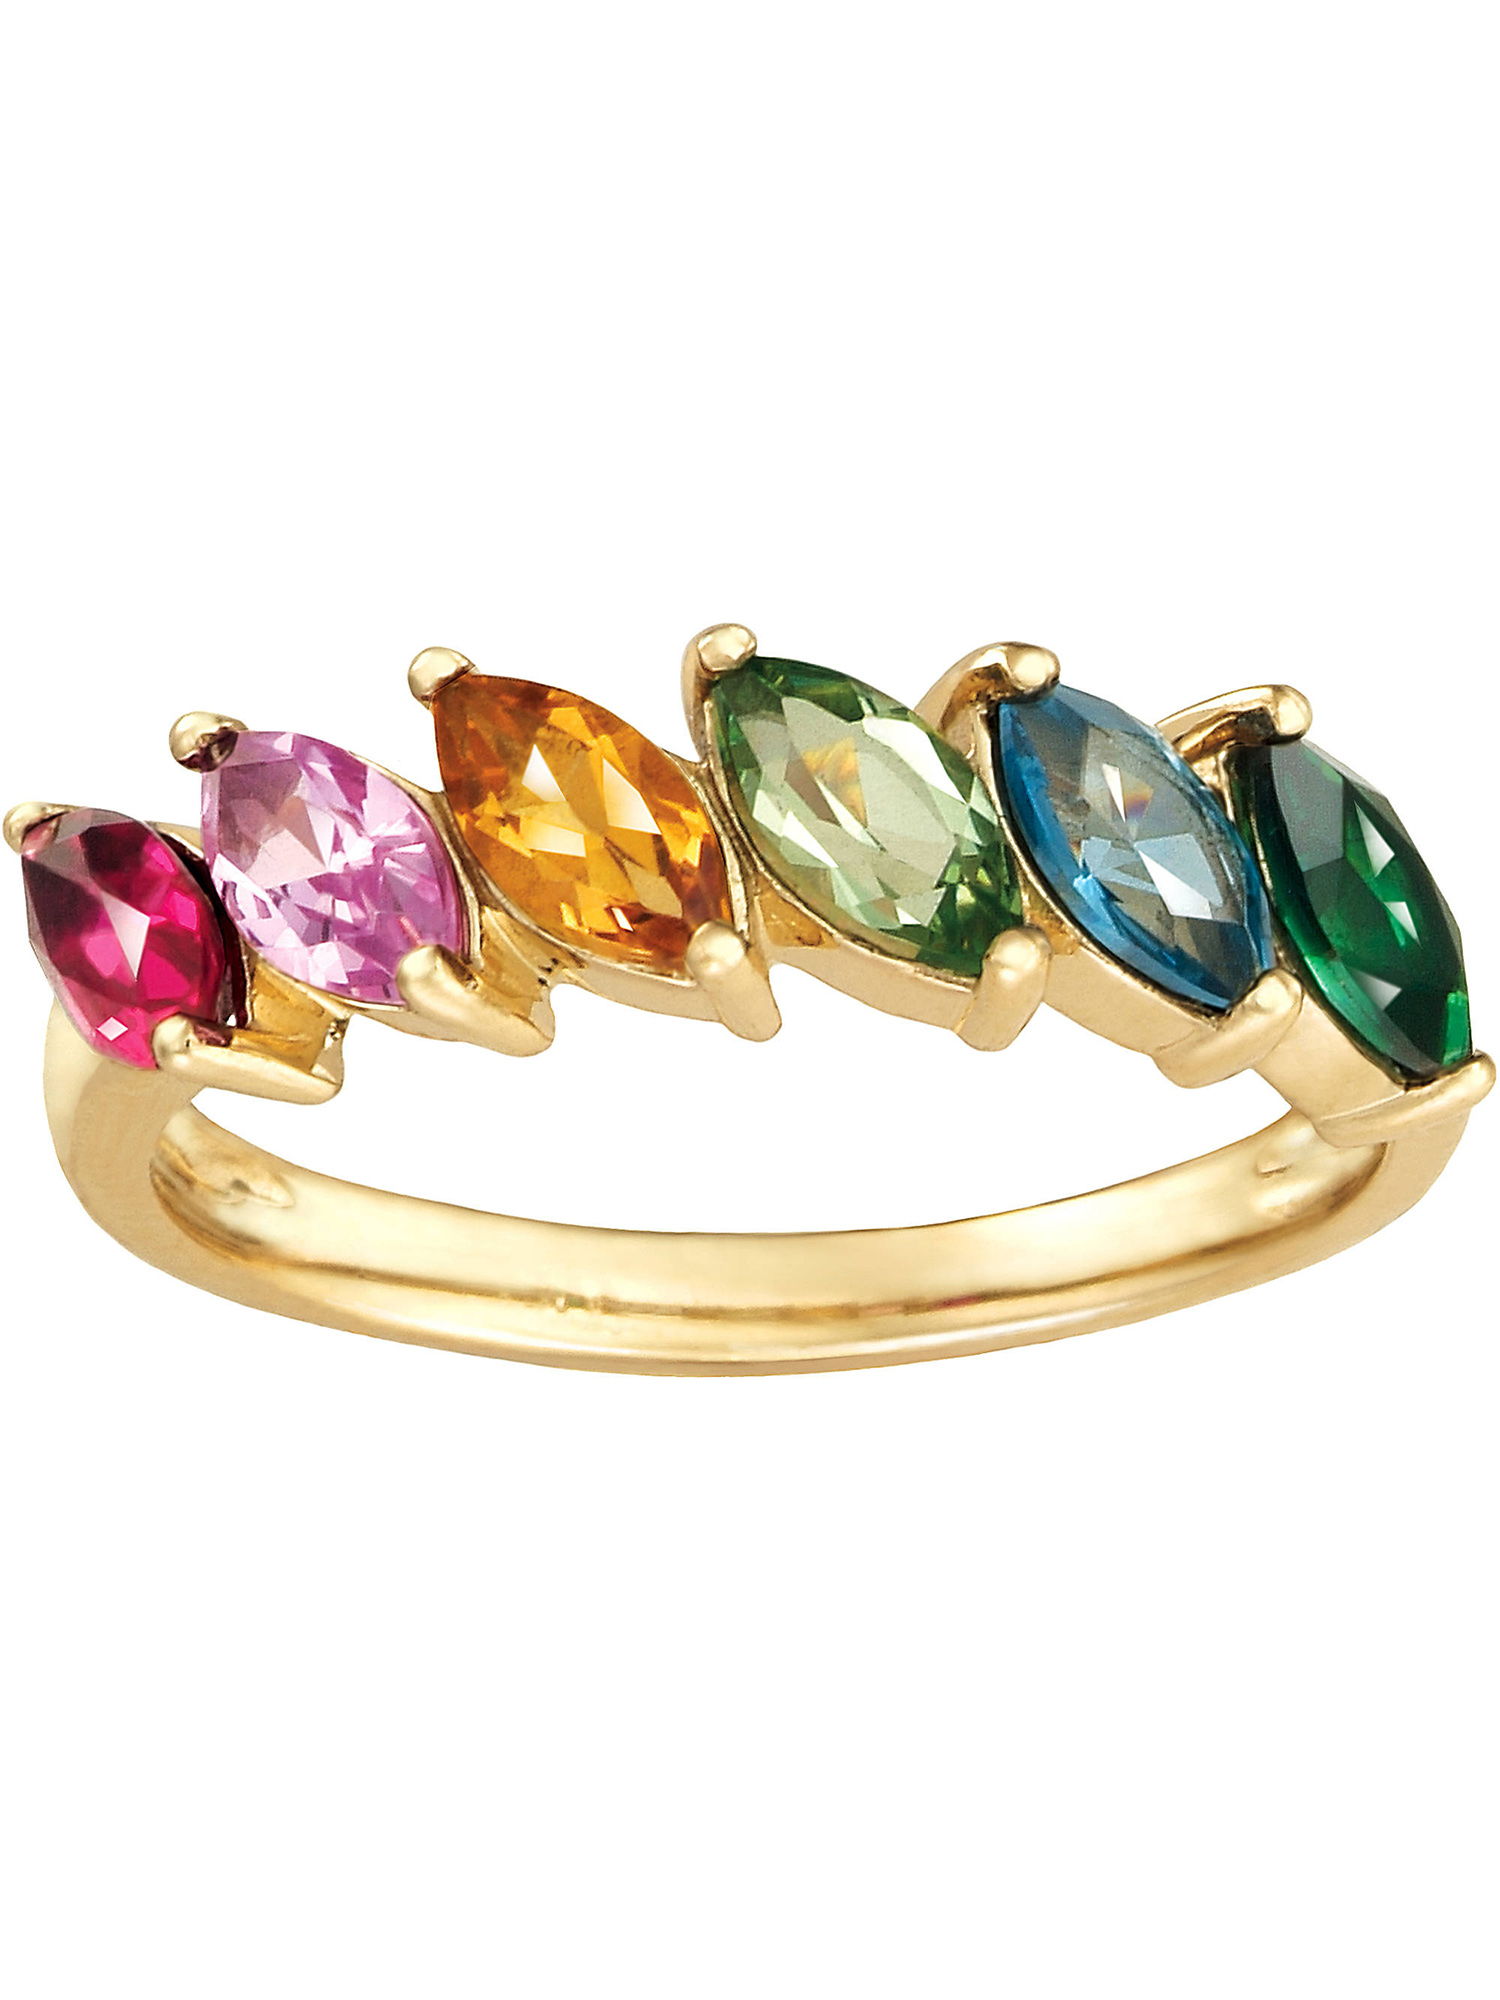 Birthstone Ring Sterling Silver or Yellow Gold Plated Silver